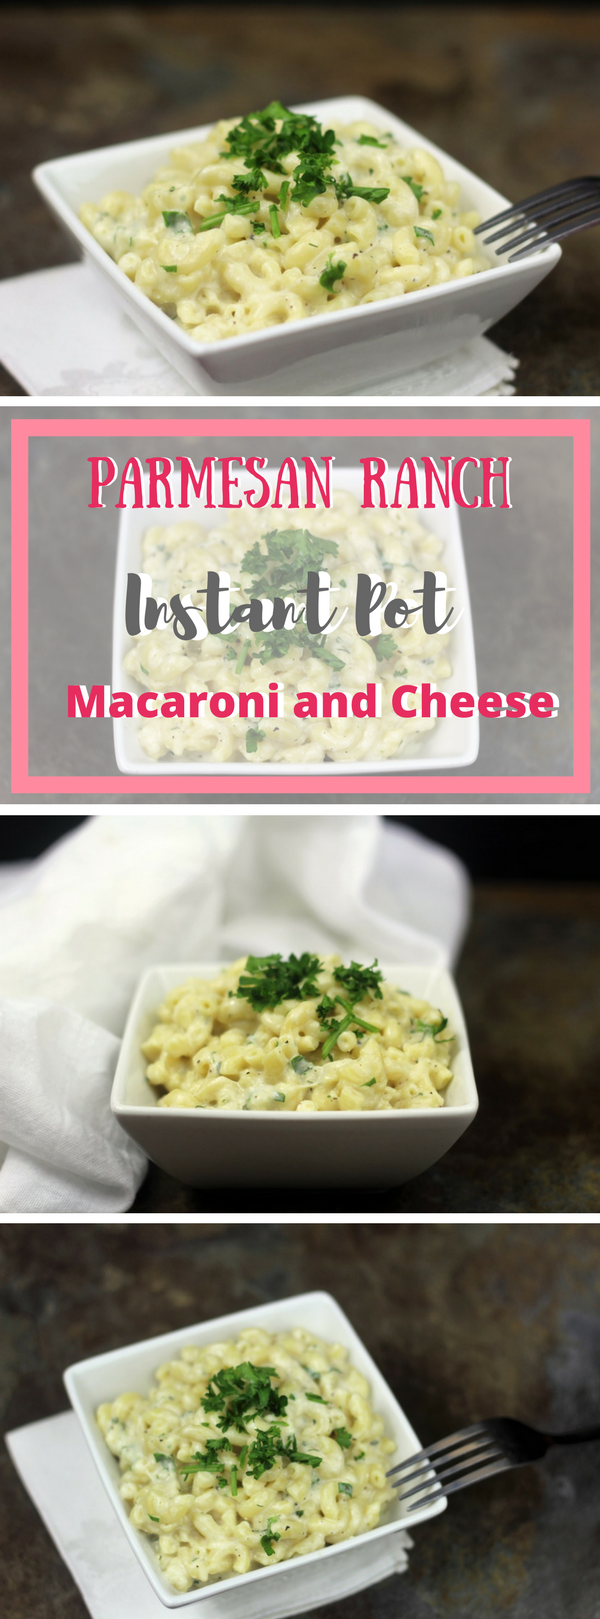 Parmesan Ranch Instant Pot Macaroni and Cheese